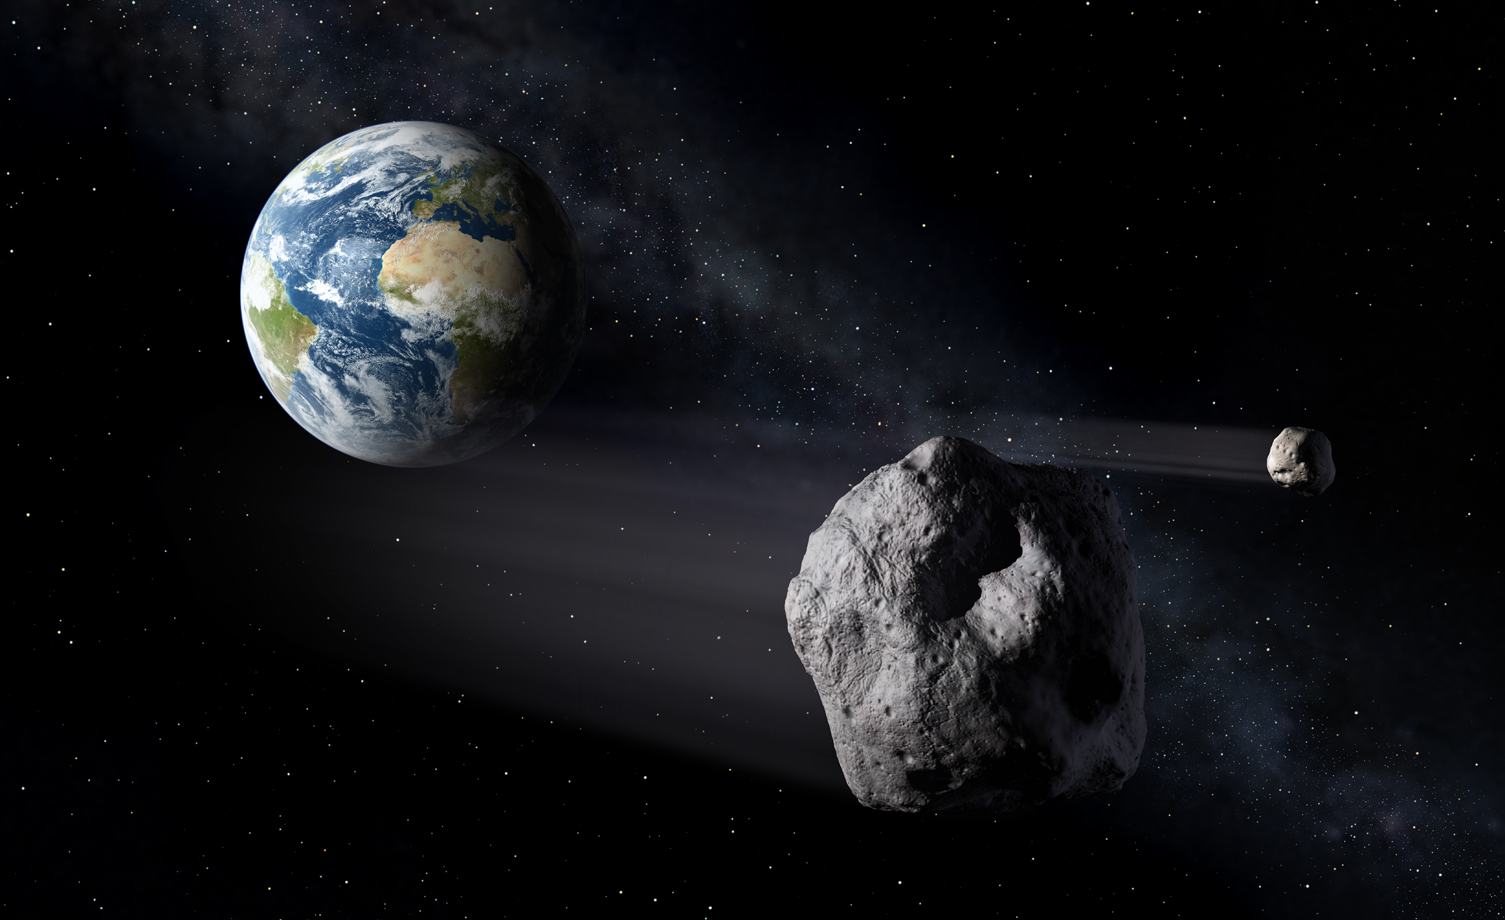 ESA Aims to Mine Asteroids for Natural Resources